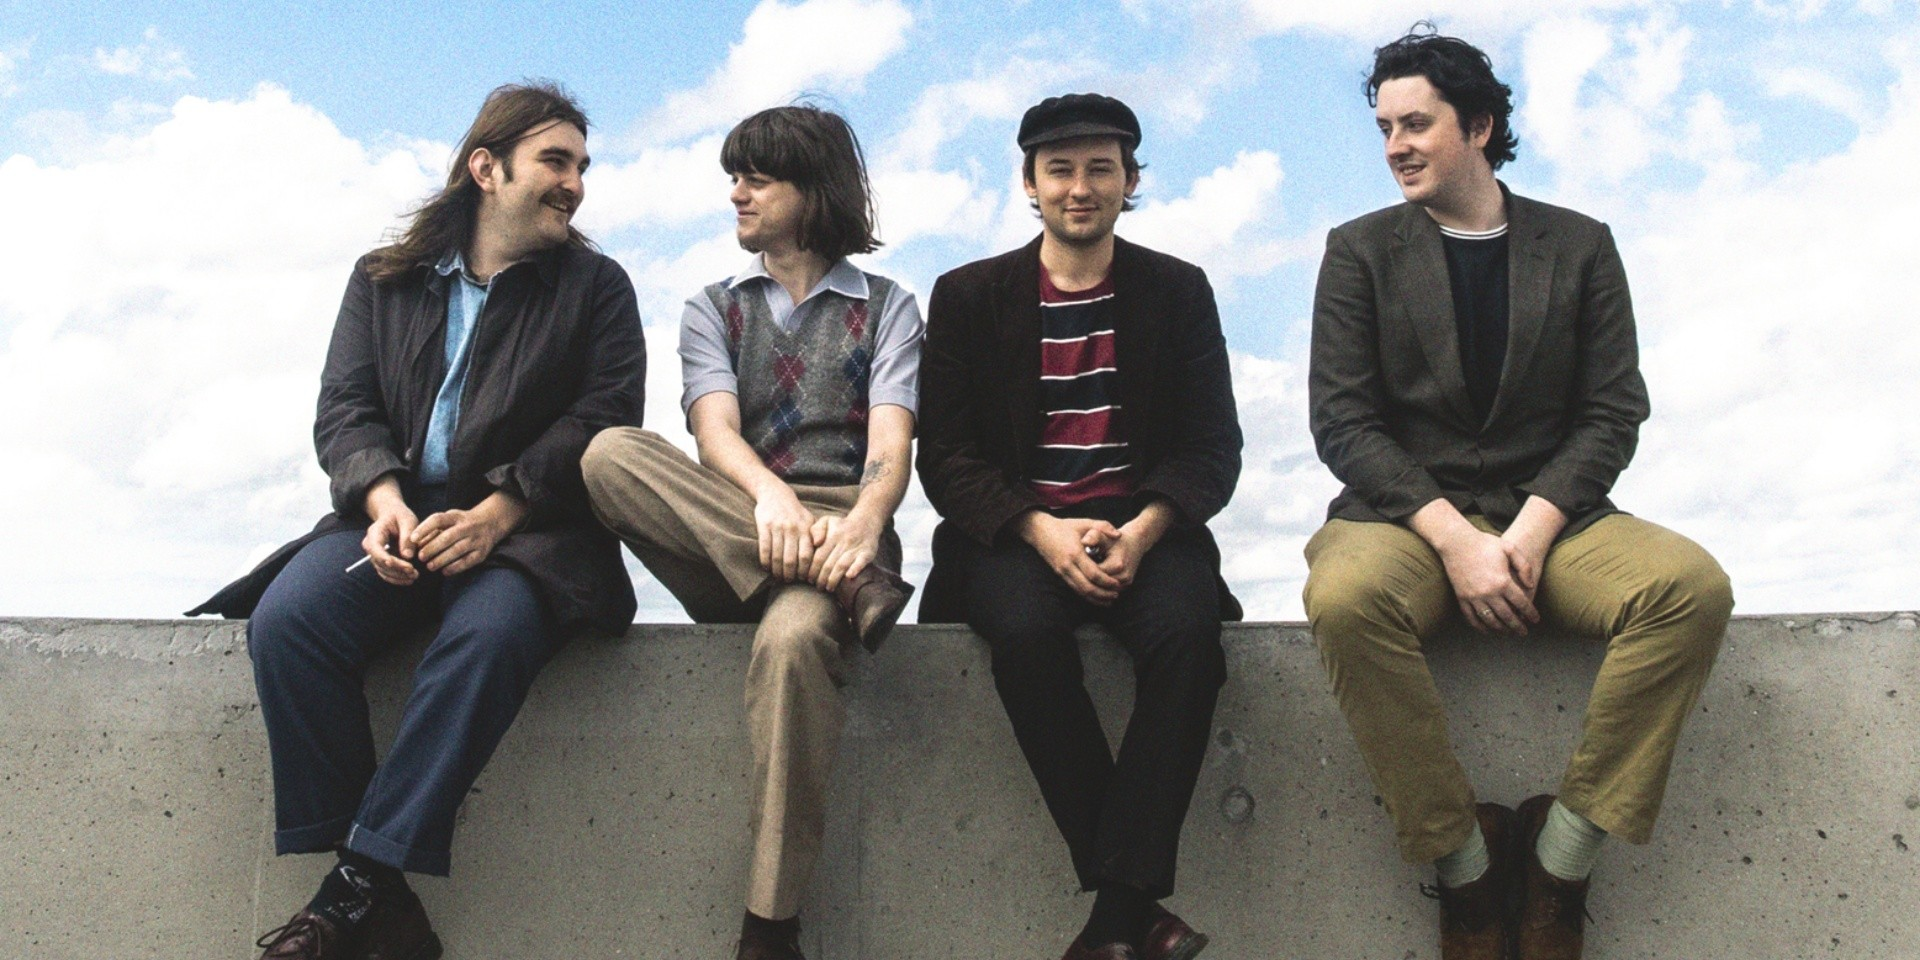 Indie pop band FUR to perform in Singapore in November, Coming Up Roses to support